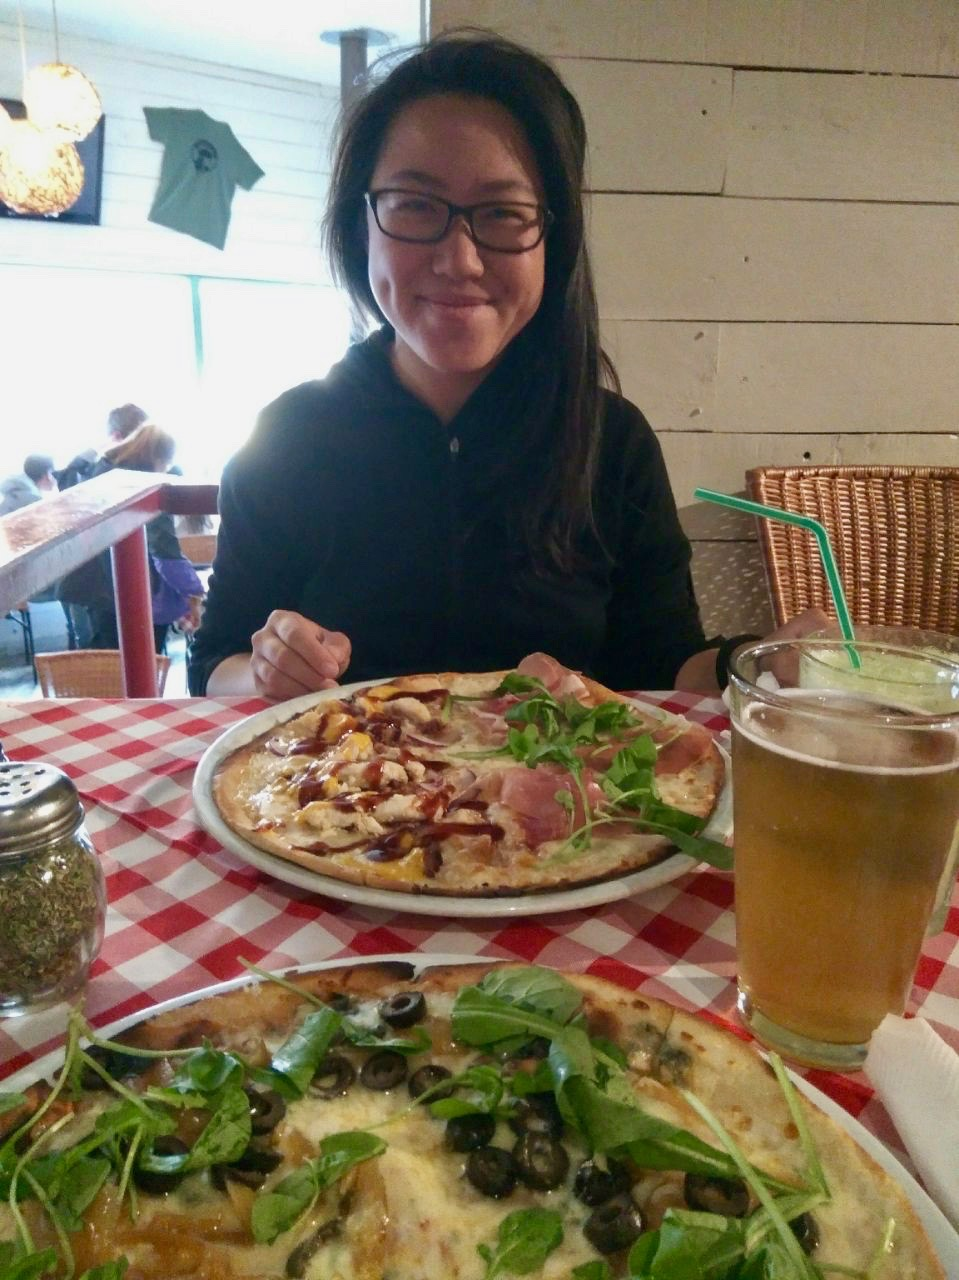 patagonia highlights - cohaique beers and pizza